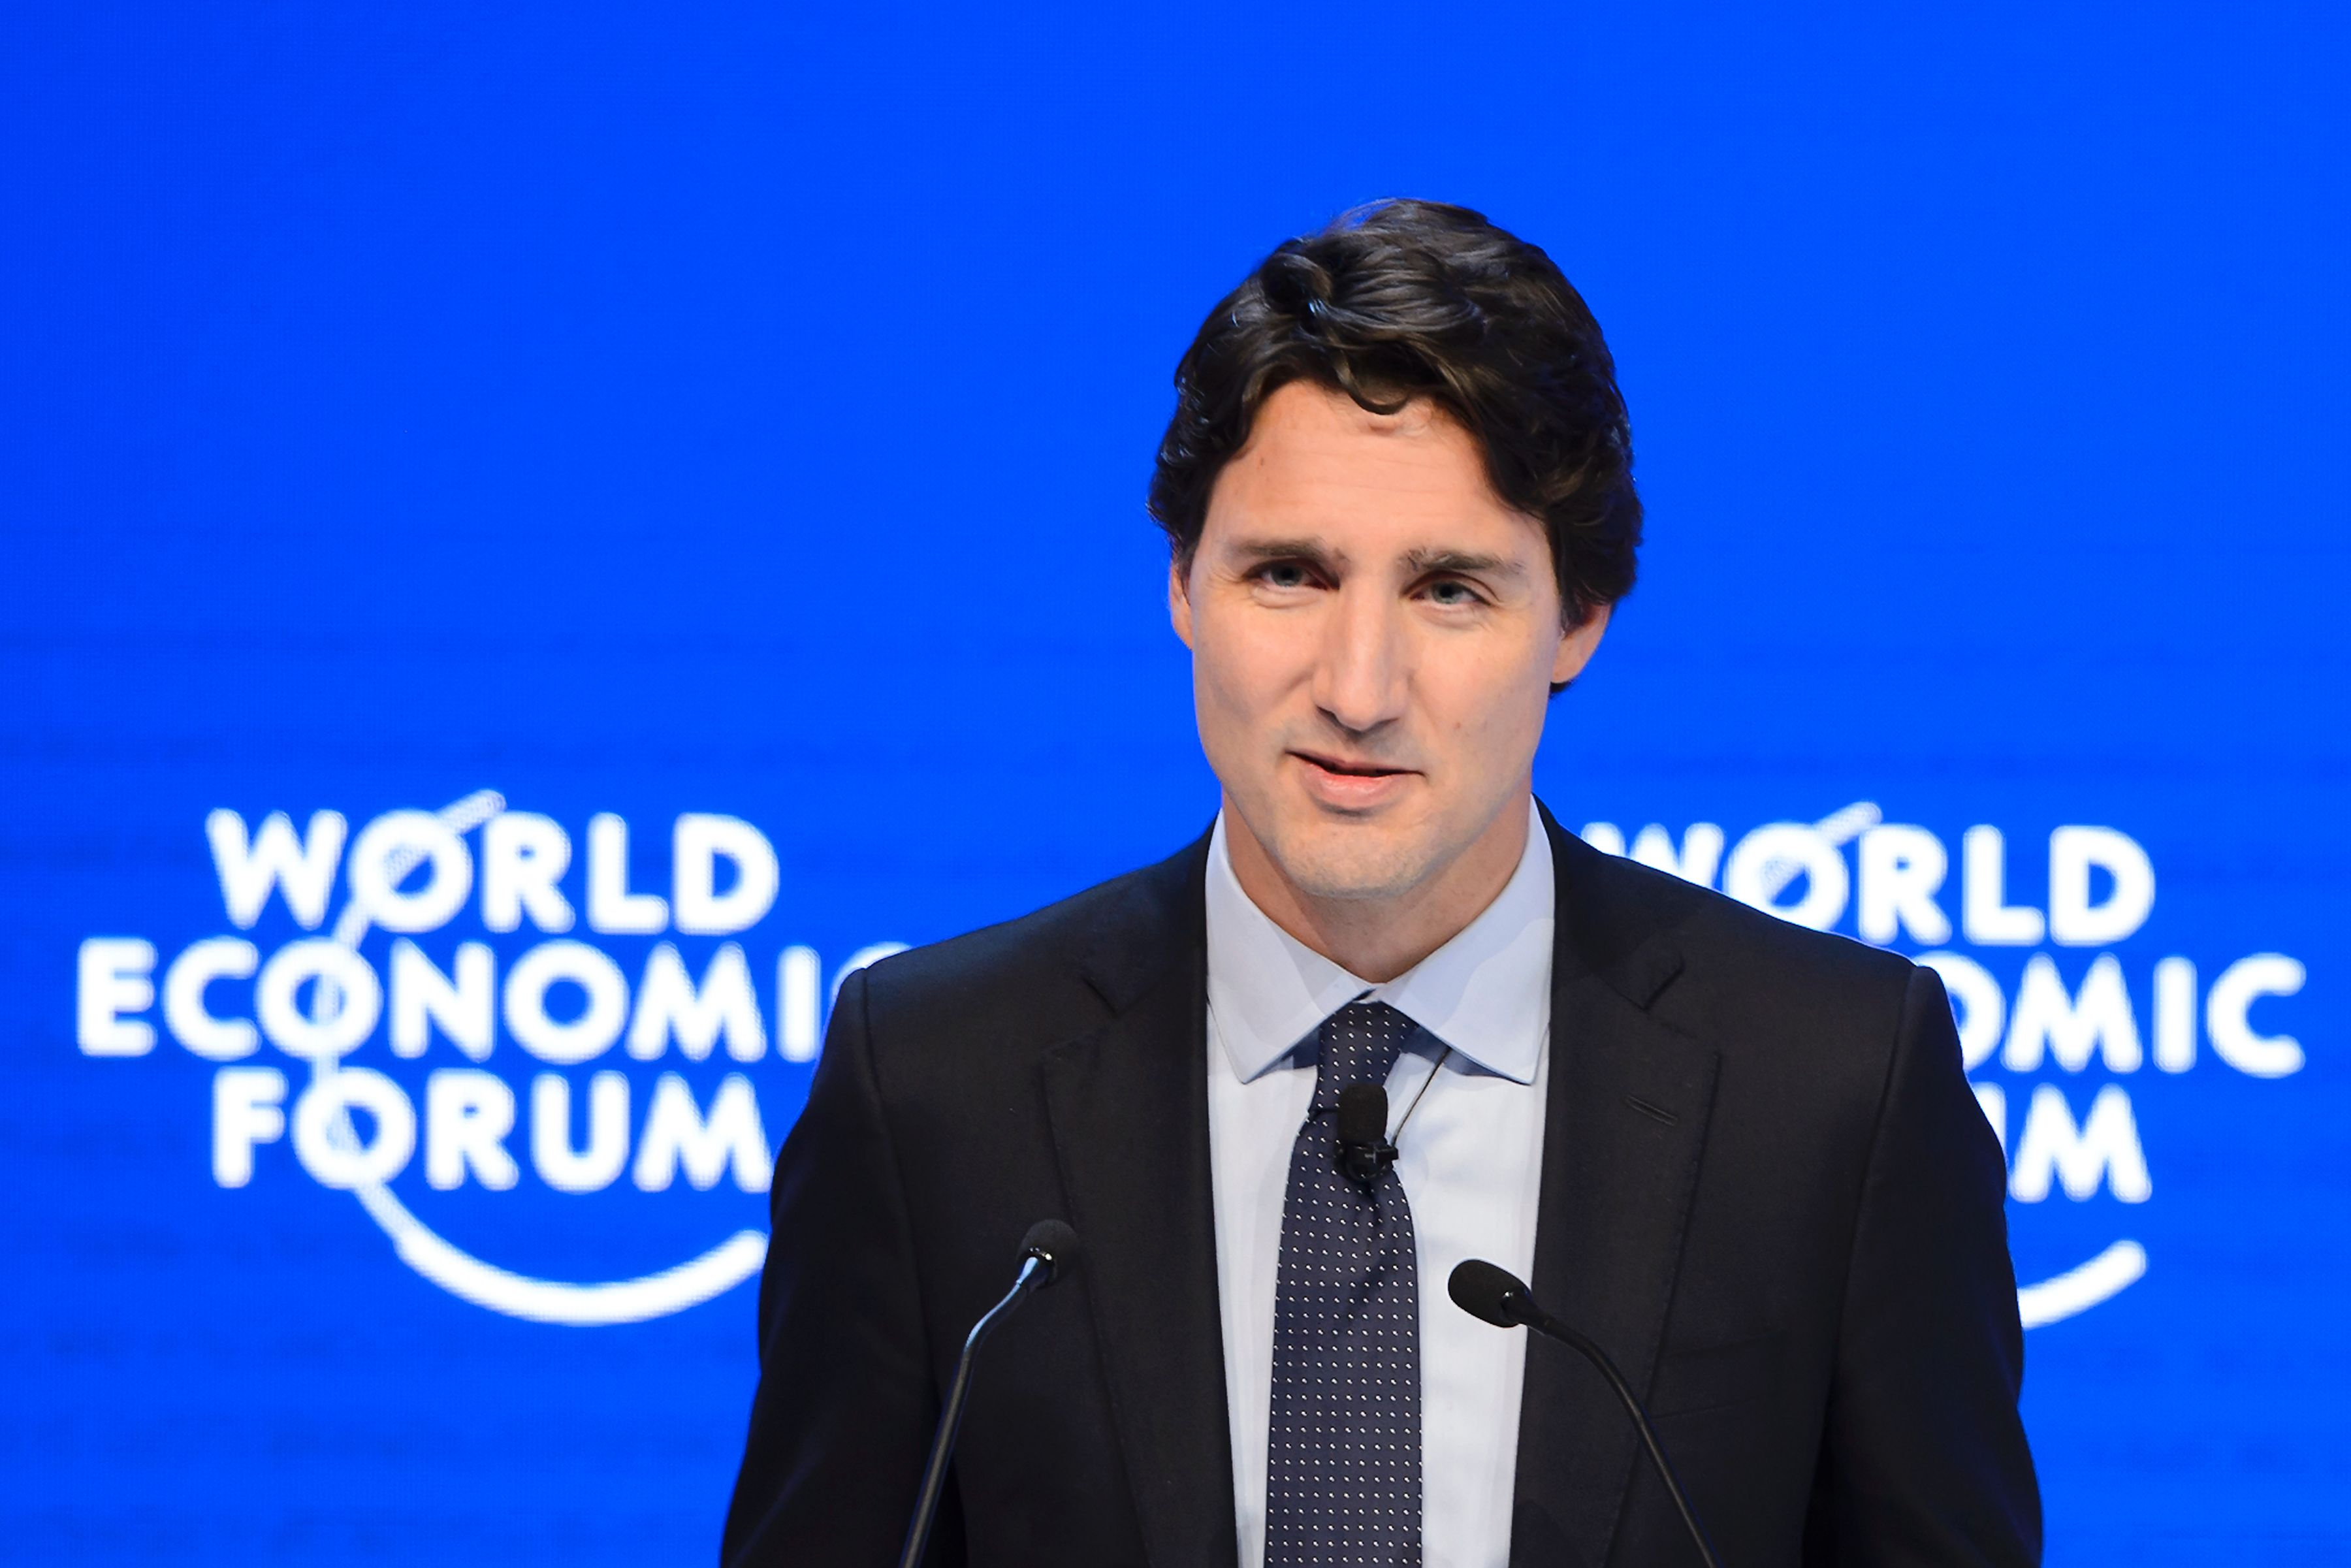 Gender Equality Quotes 7 Feminist Justin Trudeau Quotes That Thrust Gender Equality Into